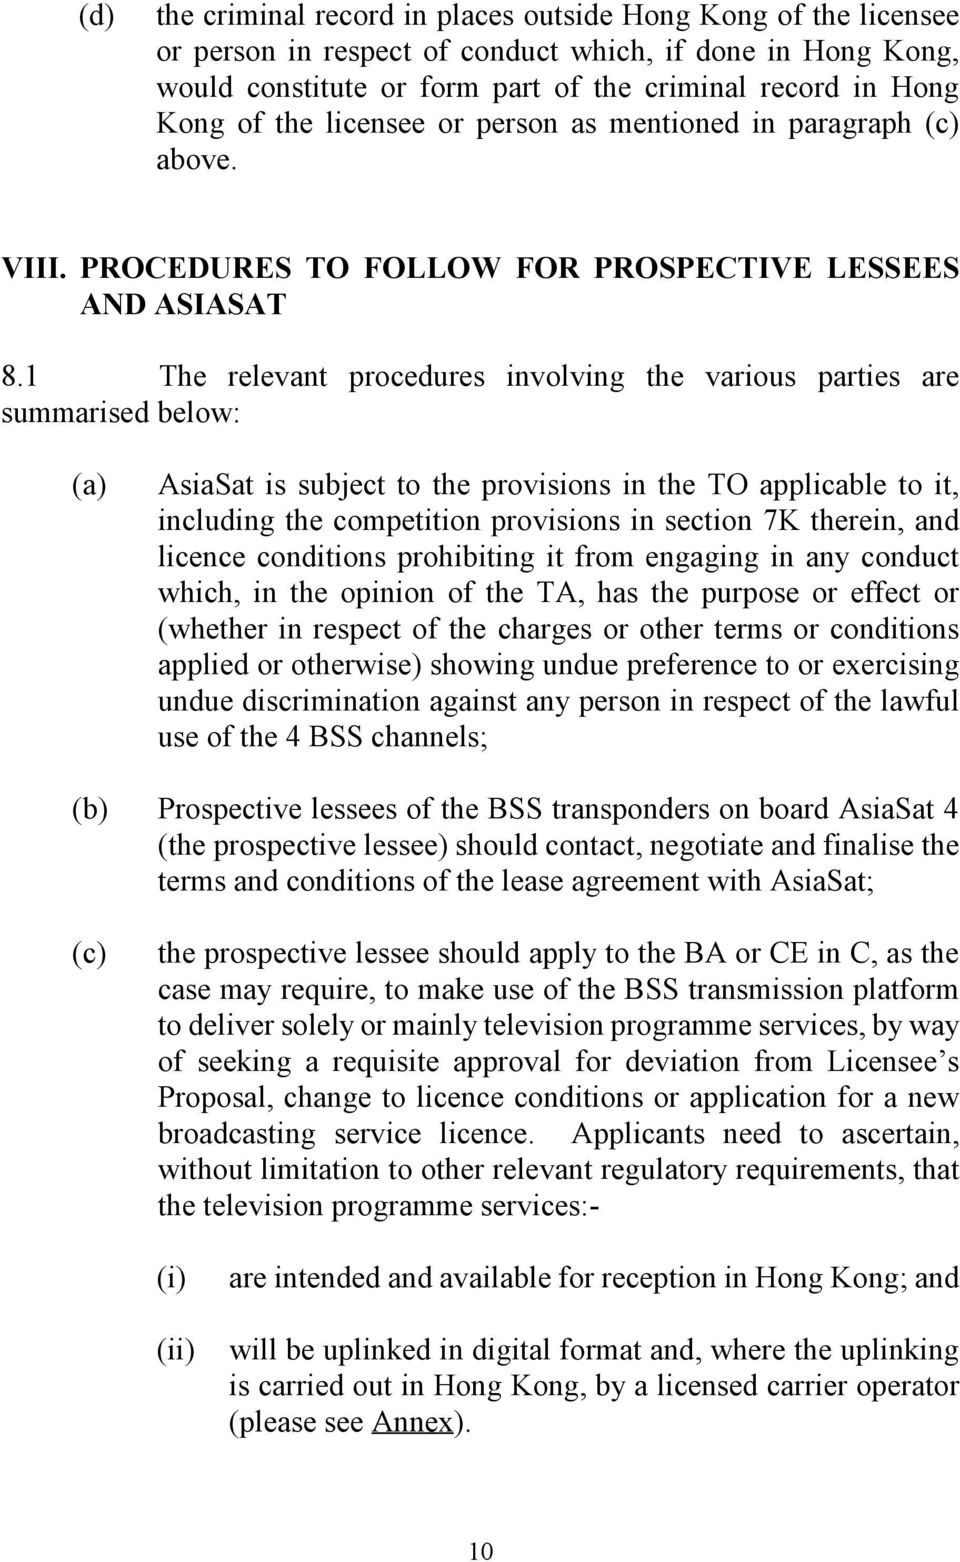 1 The relevant procedures involving the various parties are summarised below: (a) AsiaSat is subject to the provisions in the TO applicable to it, including the competition provisions in section 7K